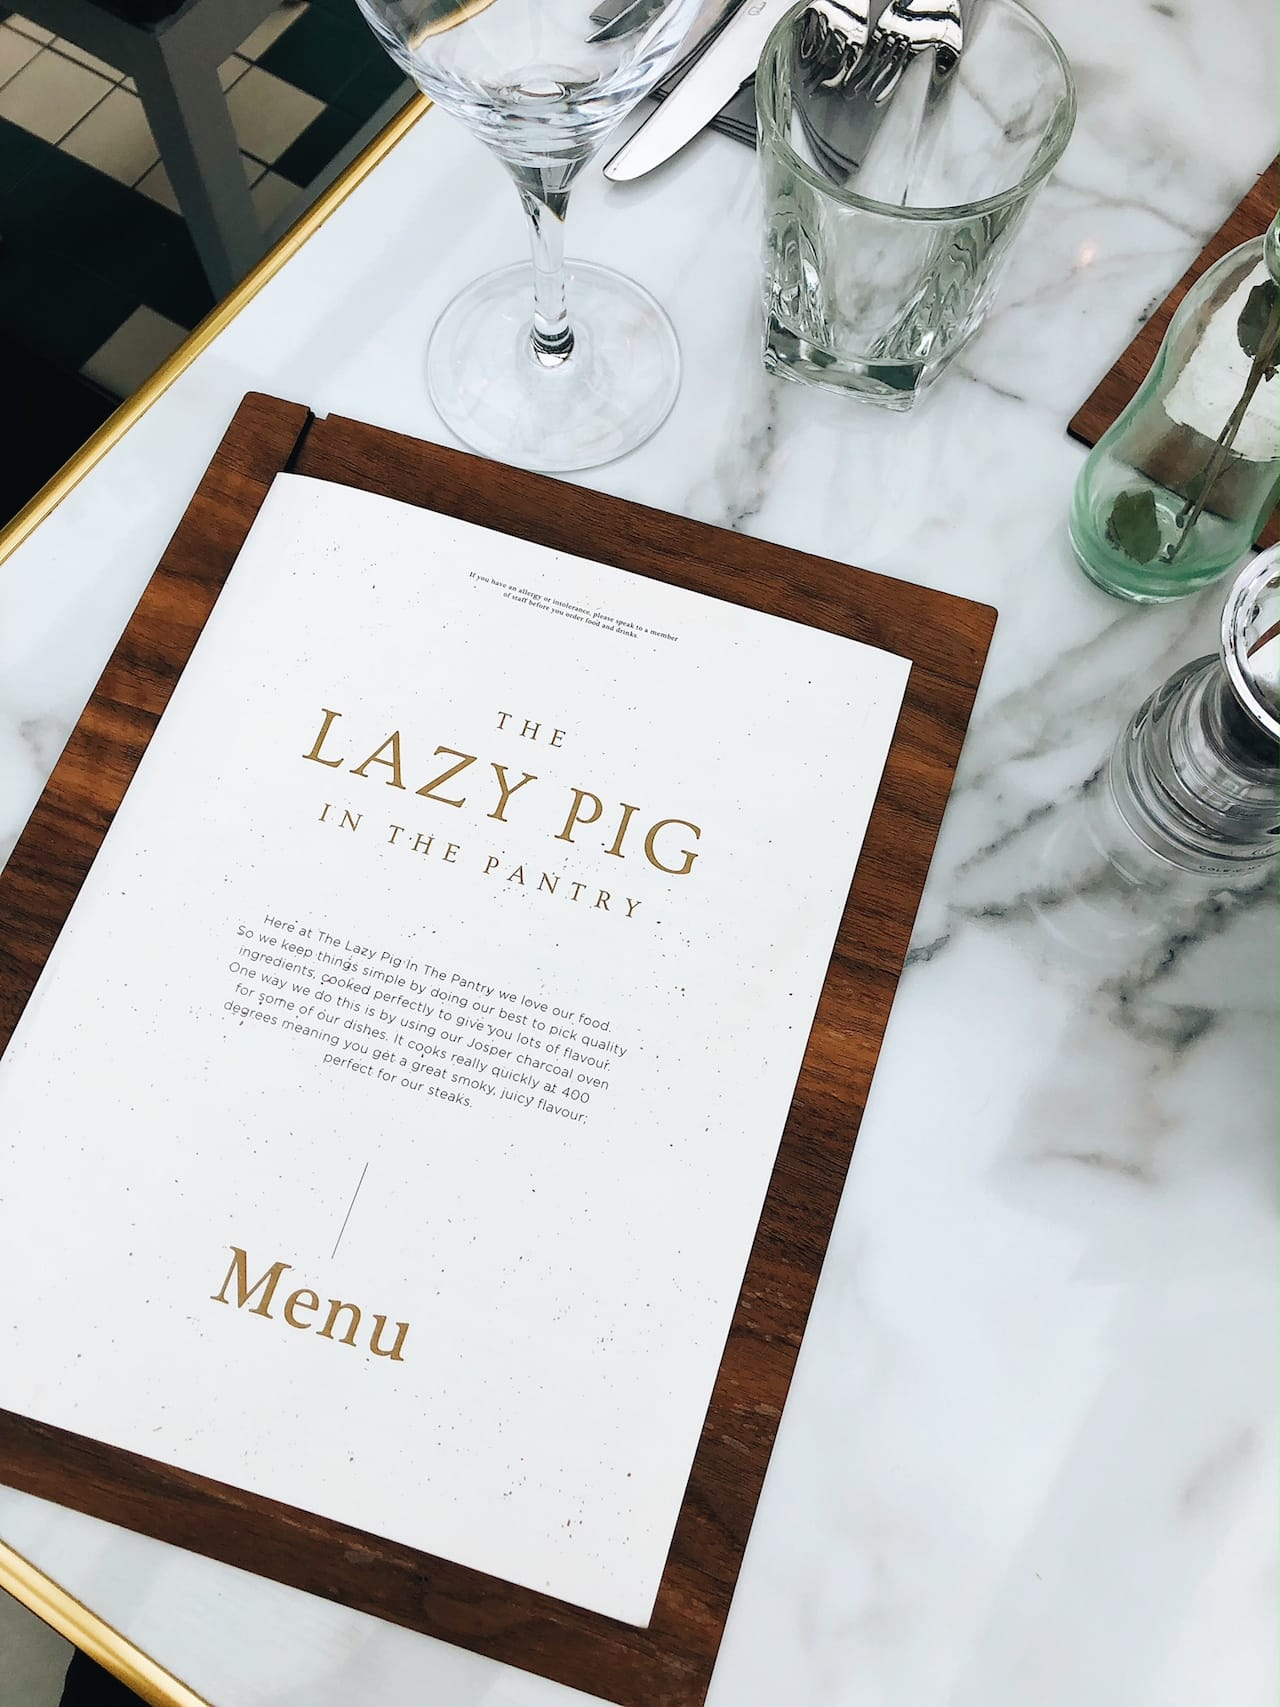 The Lazy Pig Menu